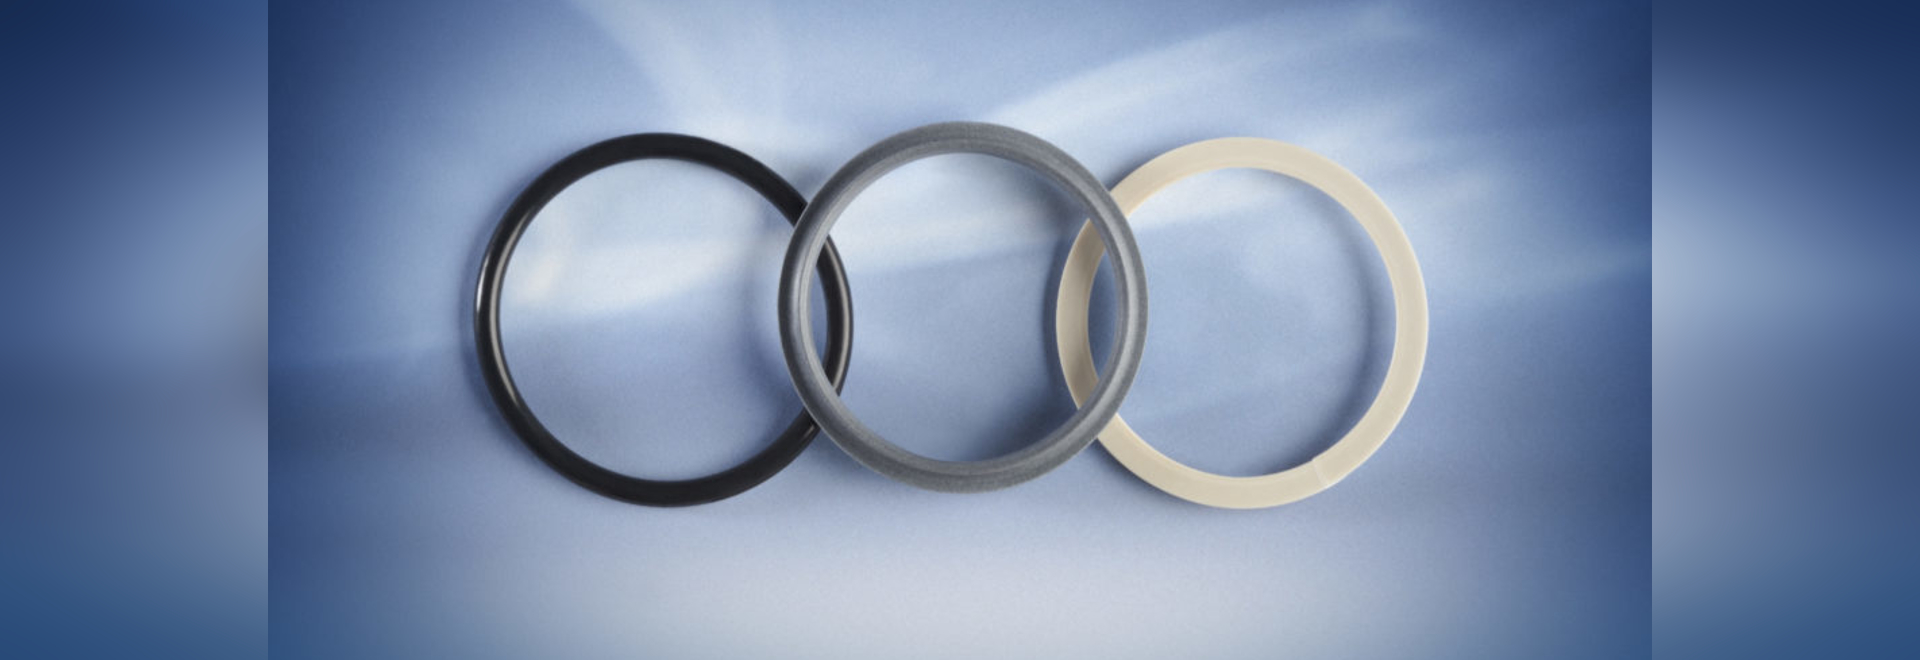 New seal for hydraulic systems in aerospace sector launched